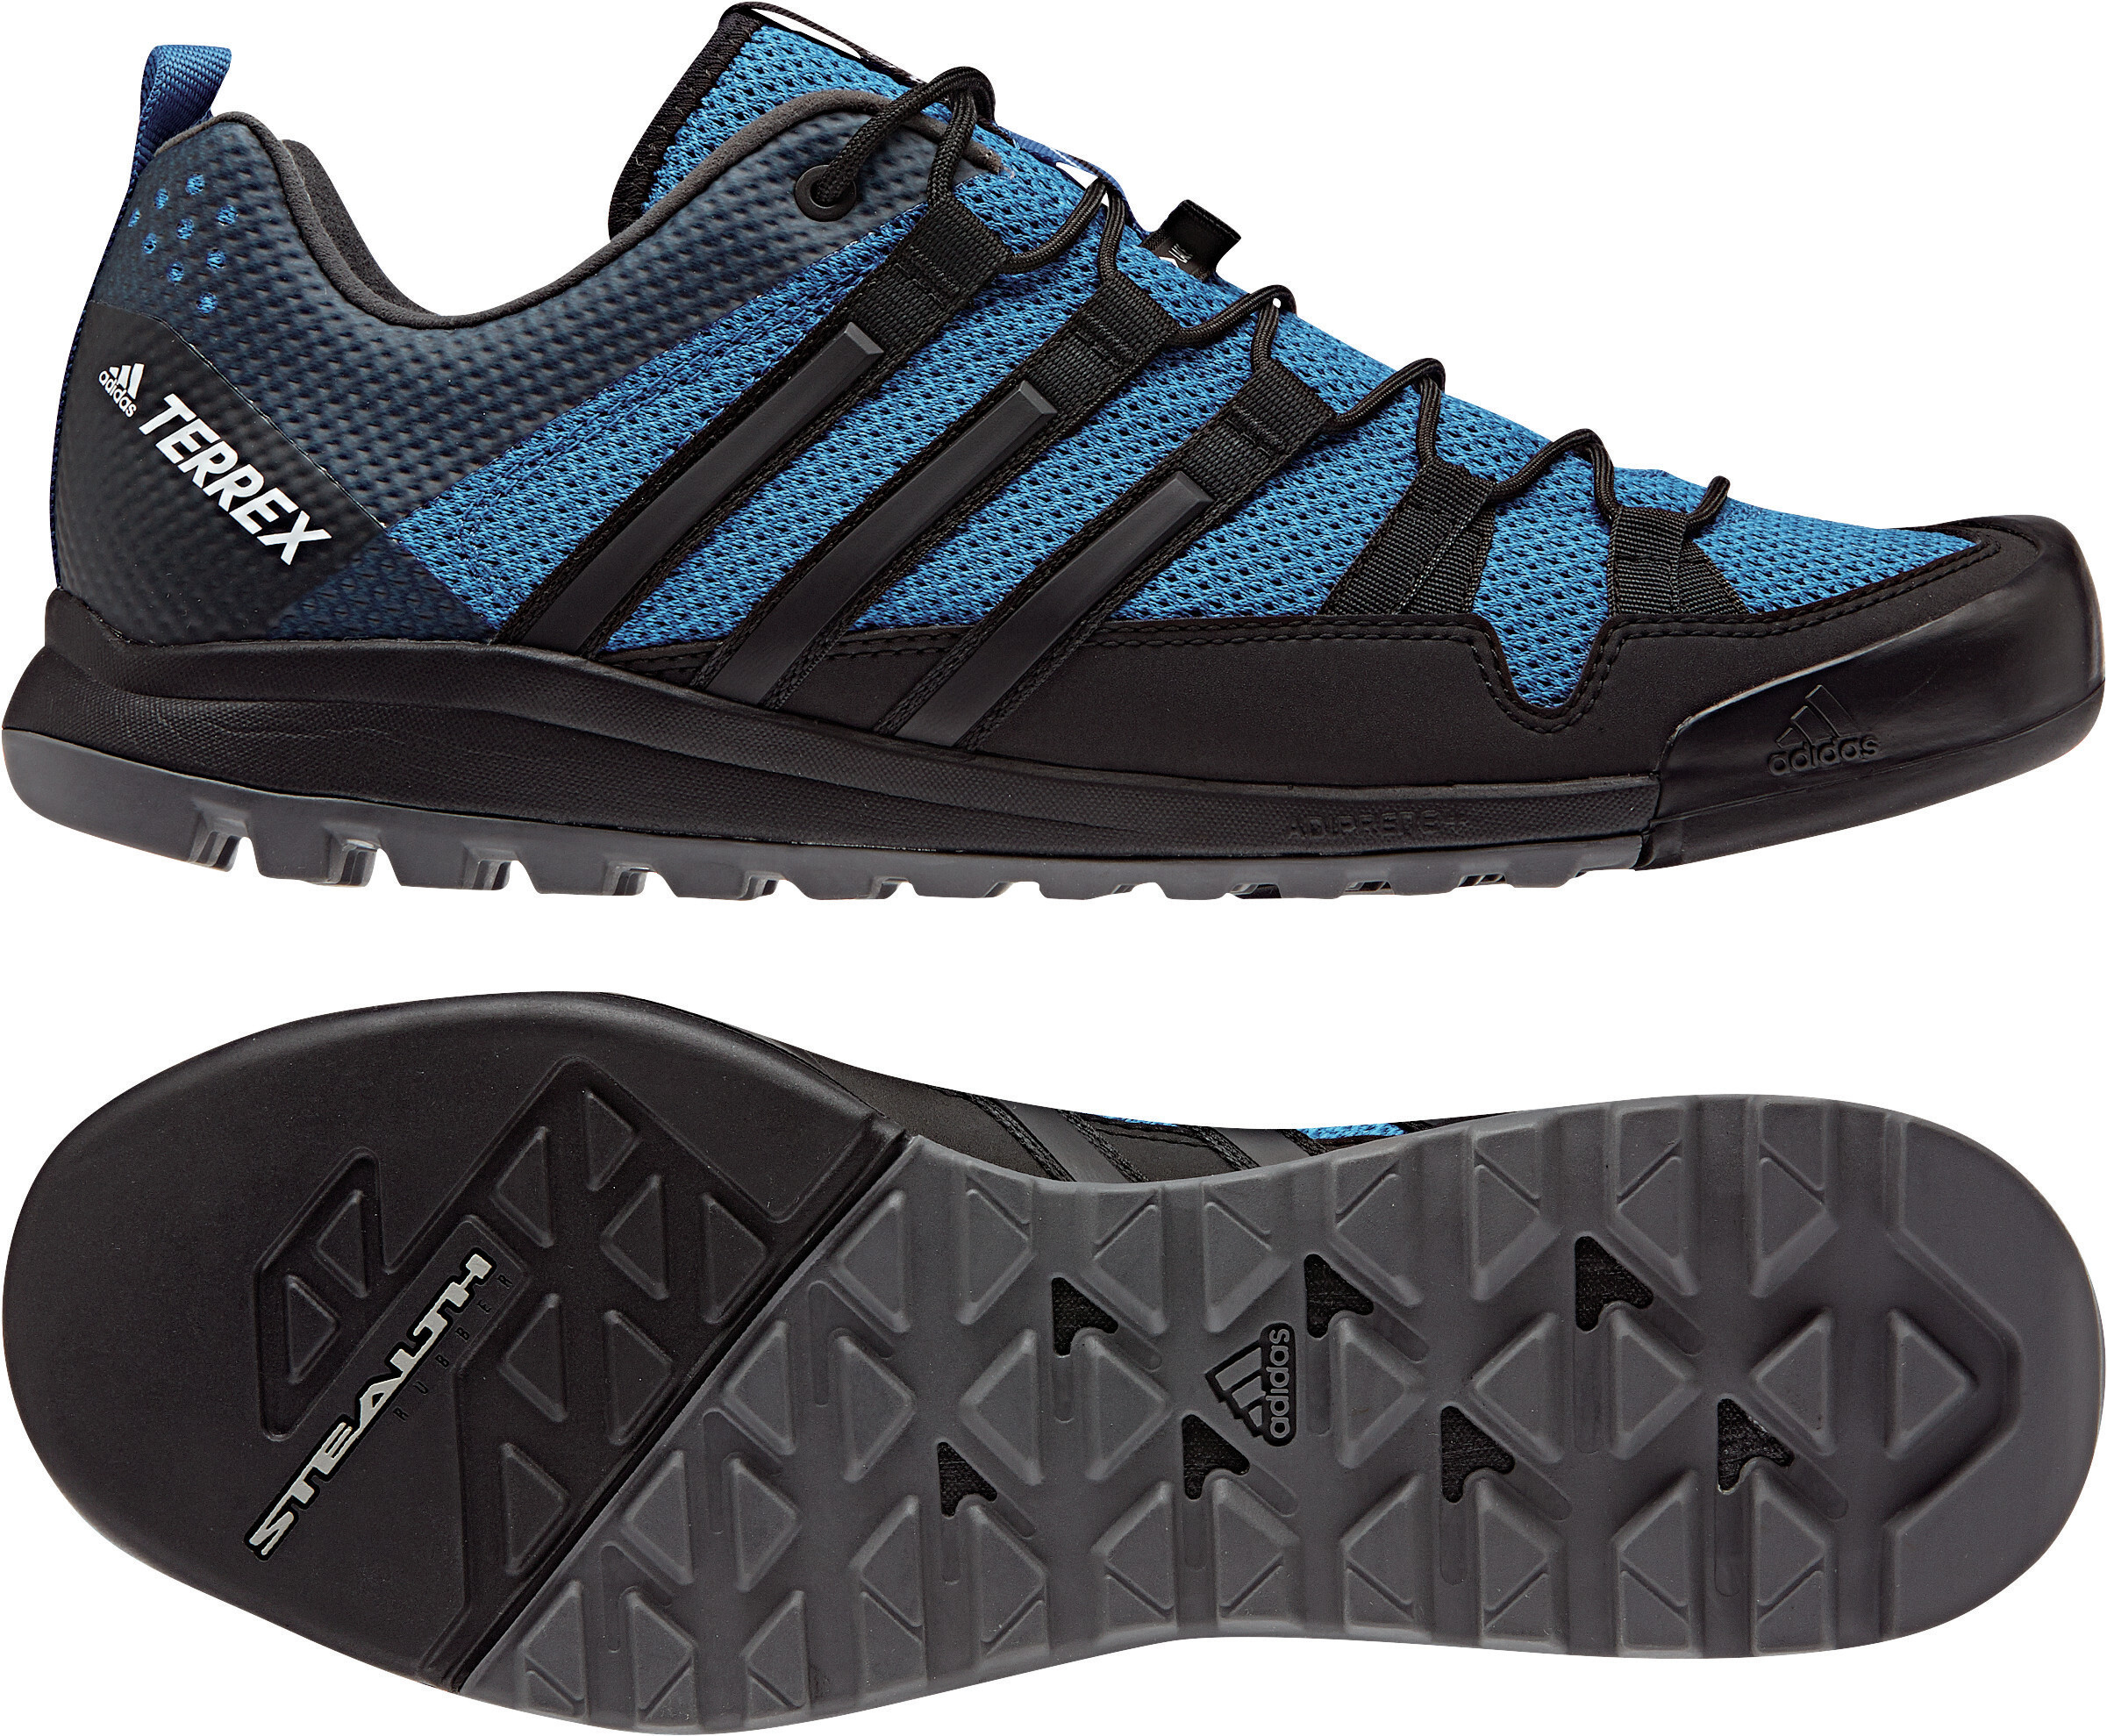 innovative design 03a0b 959ef adidas TERREX Solo - Chaussures running Homme - noir turquoise